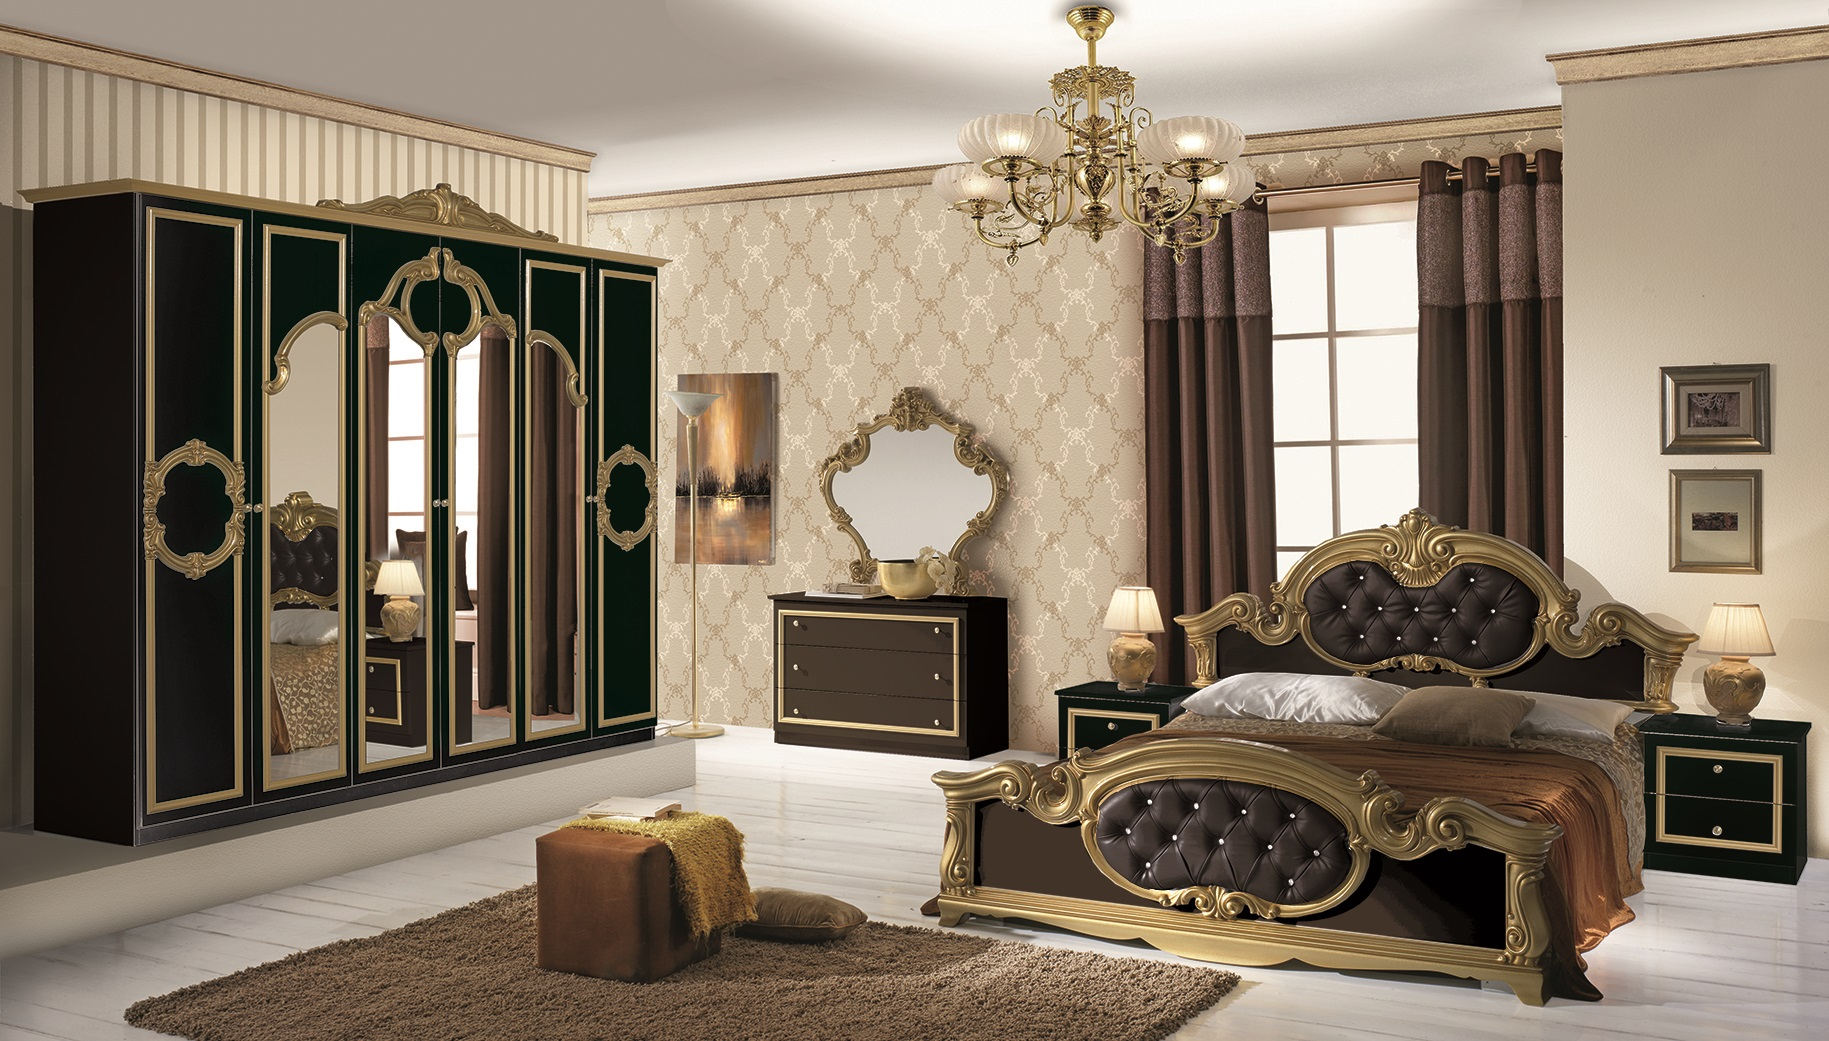 bett barocco in schwarz gold barock design 180x200 cm. Black Bedroom Furniture Sets. Home Design Ideas